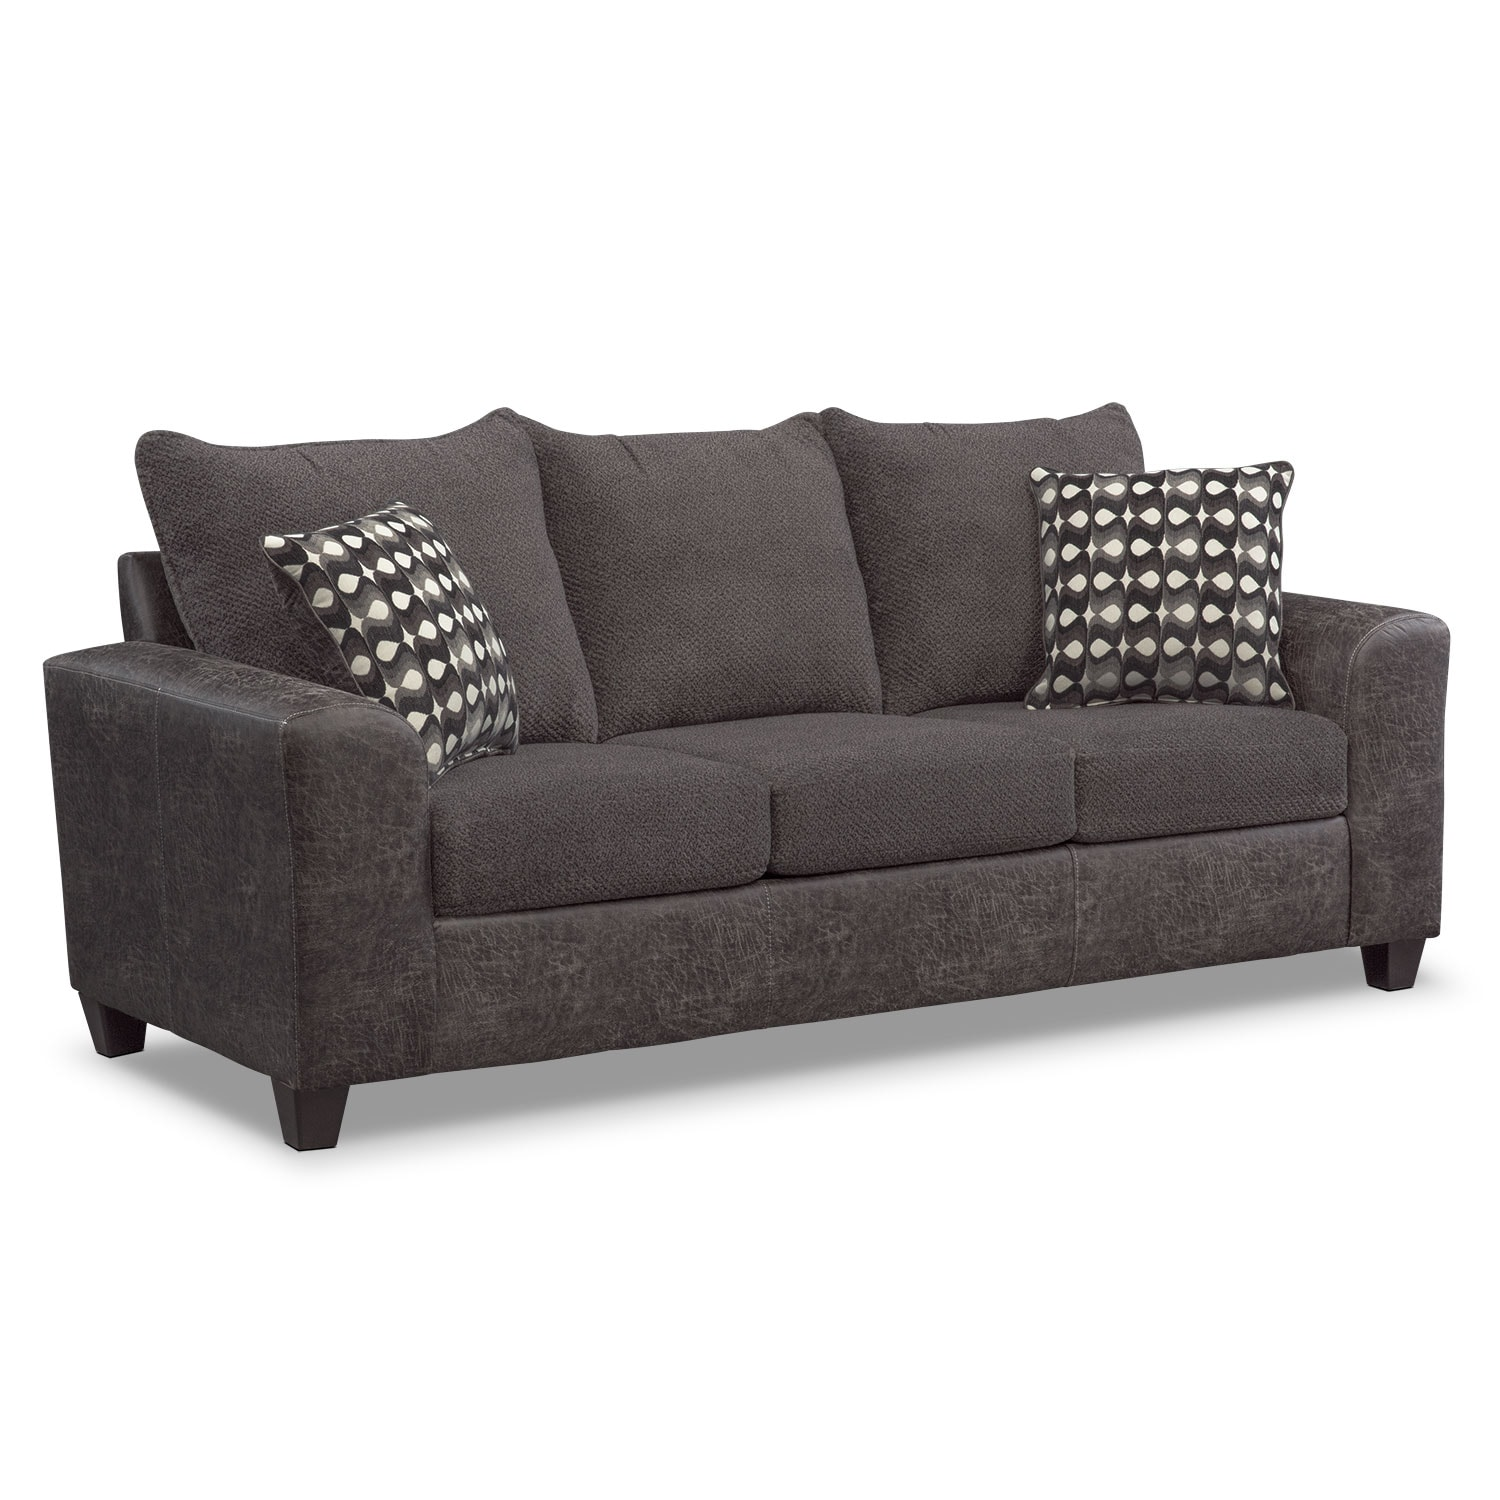 Living Room Sets Value City Furniture brando sofa - smoke | value city furniture